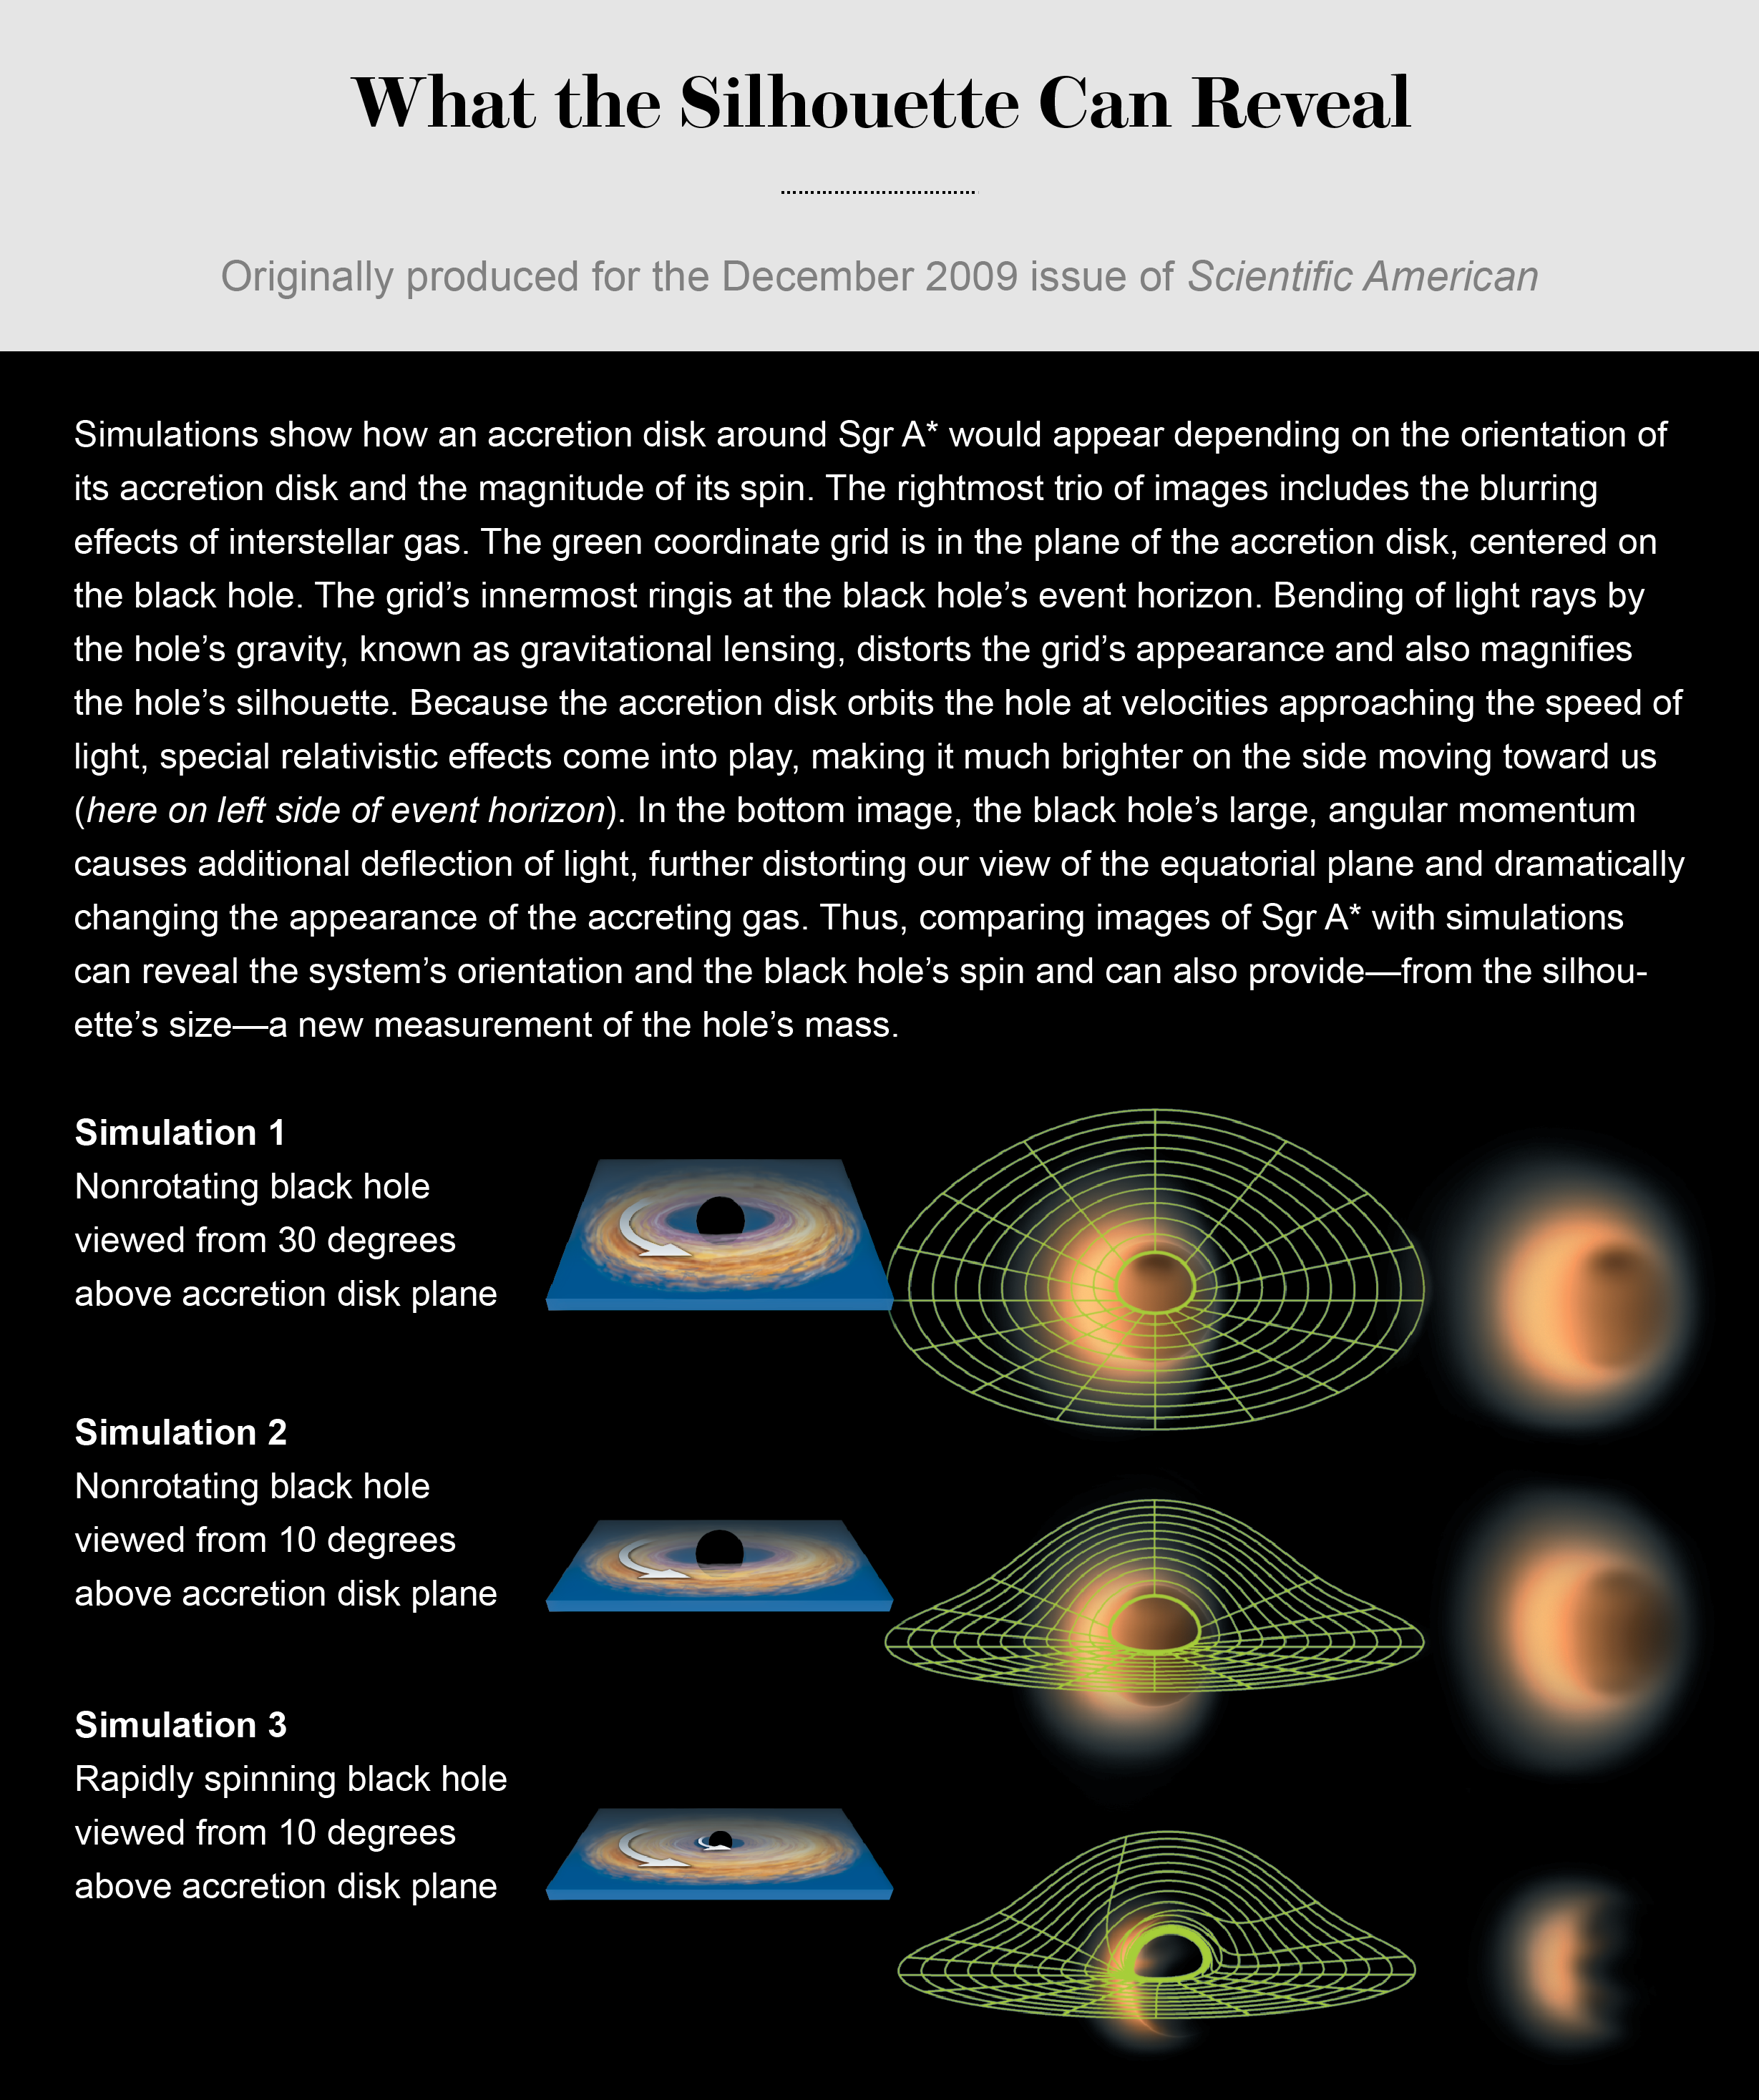 what a black hole really is essay A black hole is called a super massive black hole when a normal galactic nuclei black hole has a mass range between 01 million to 10 million solar masses (cardiff university 2014) it is believed that one solar mass is equal the mass of the sun, so that would make a super-massive black hole very large compared to the sun.